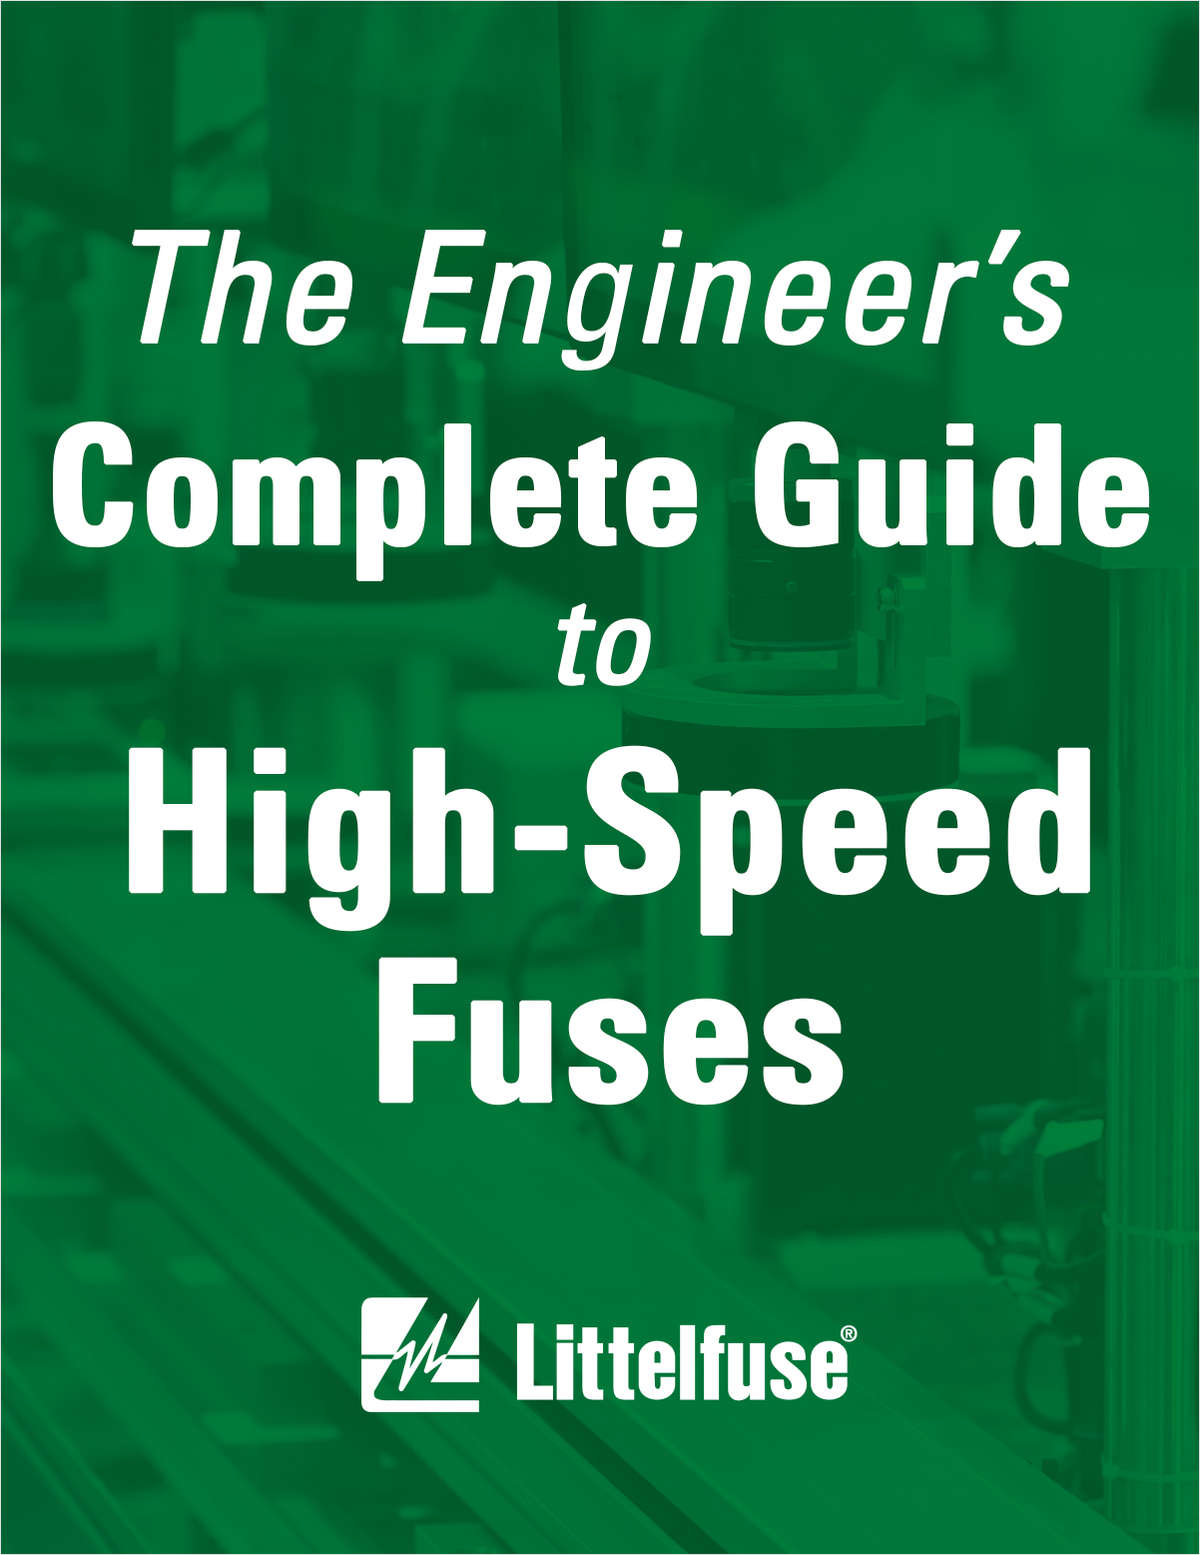 The Engineer's Complete Guide to High-Speed Fuses